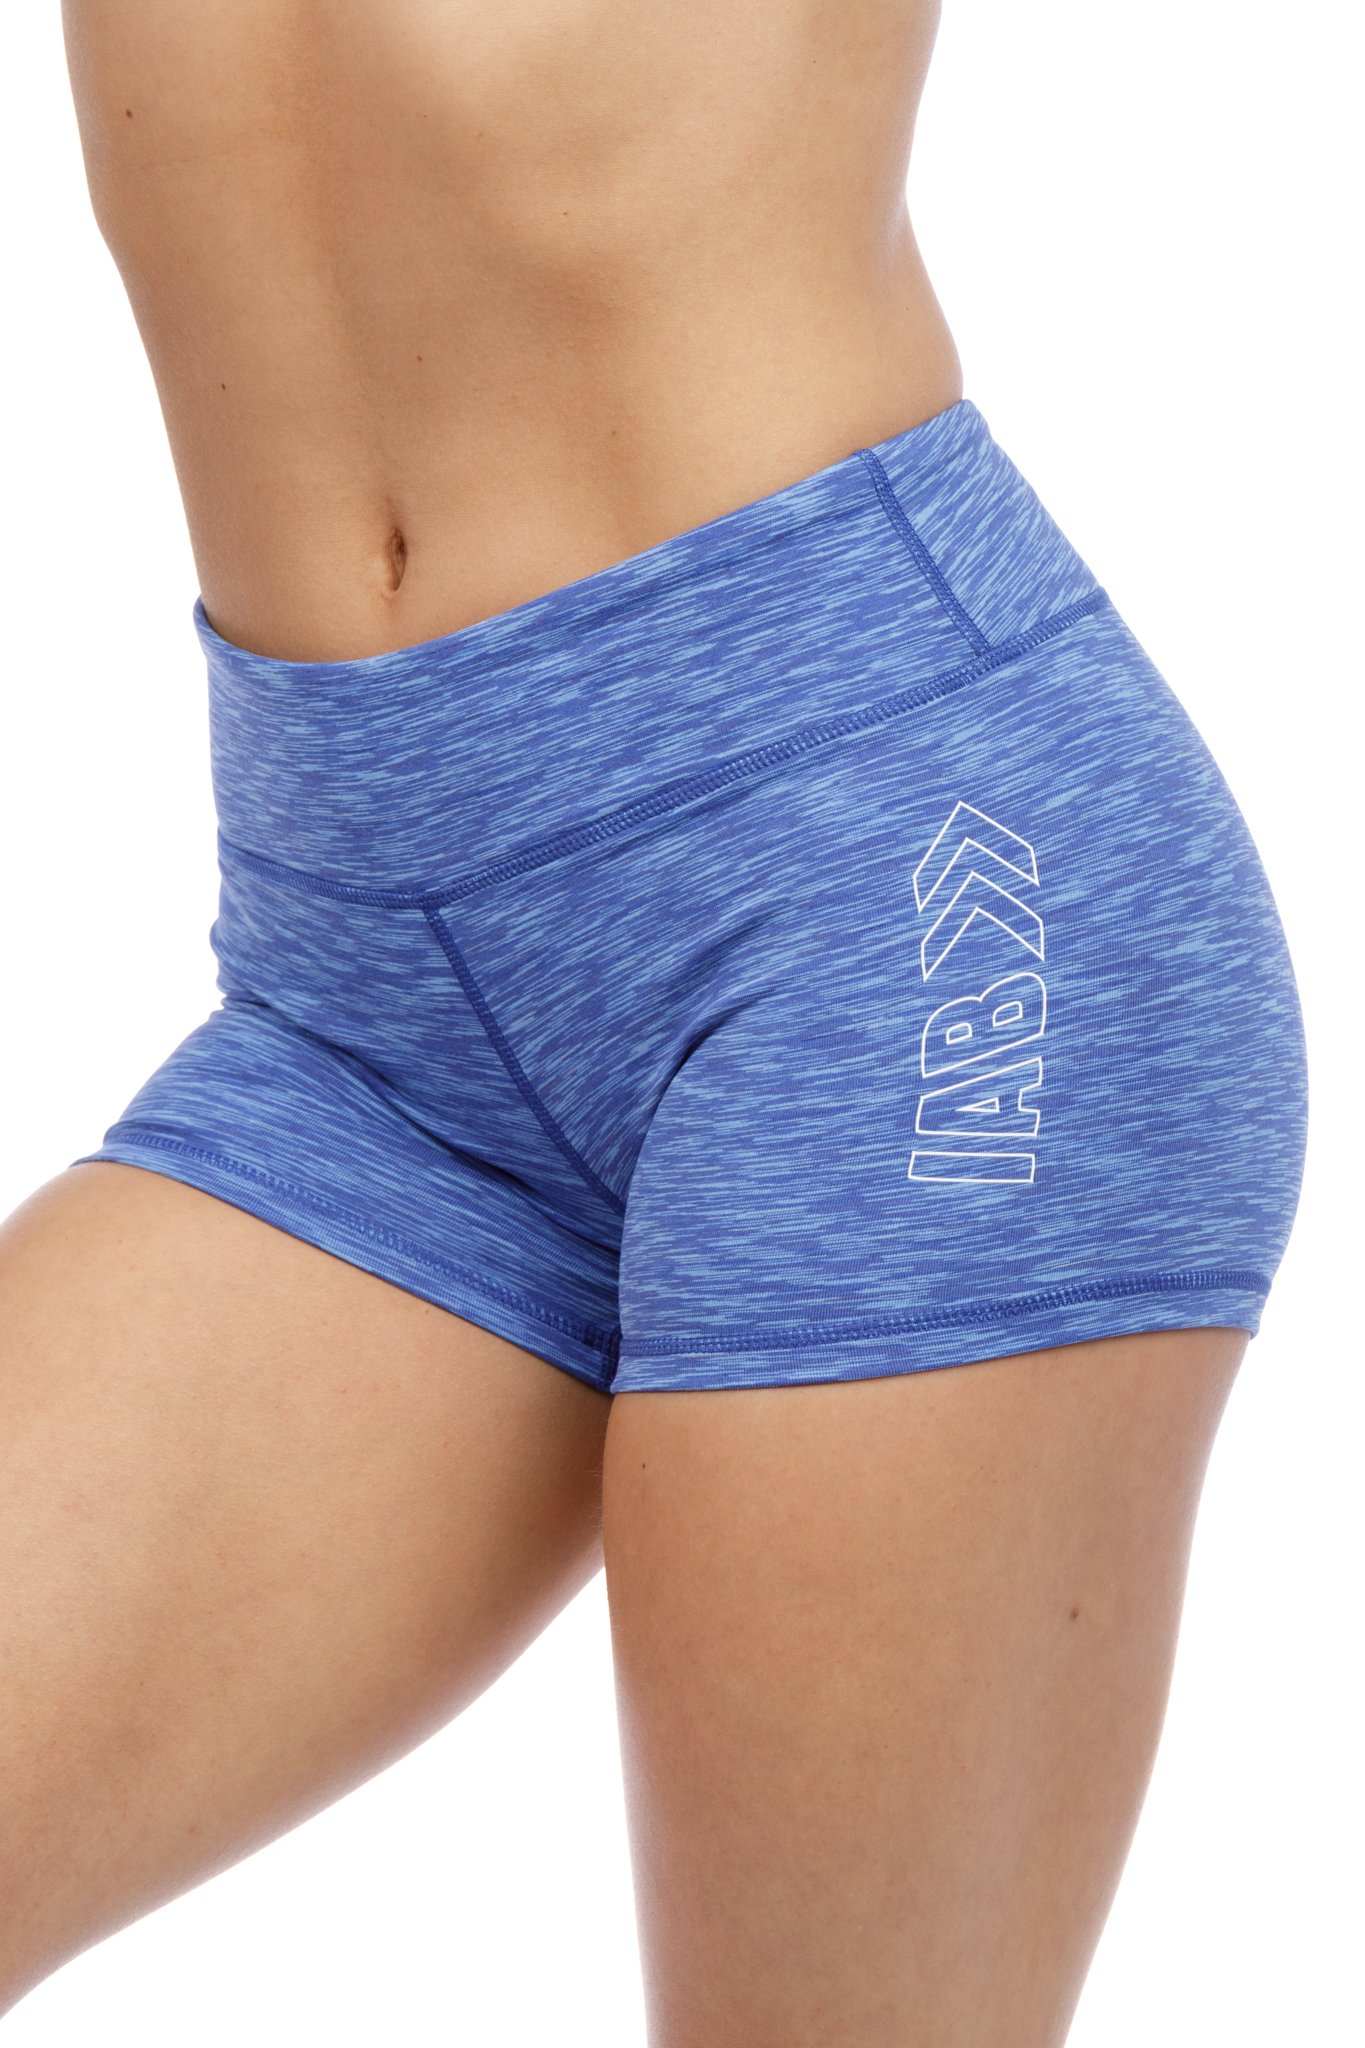 3'' Inseam Compression Shorts for Yoga, Running, Volleyball, and Crossfit Athletes (Large, Royal Blue Heather)